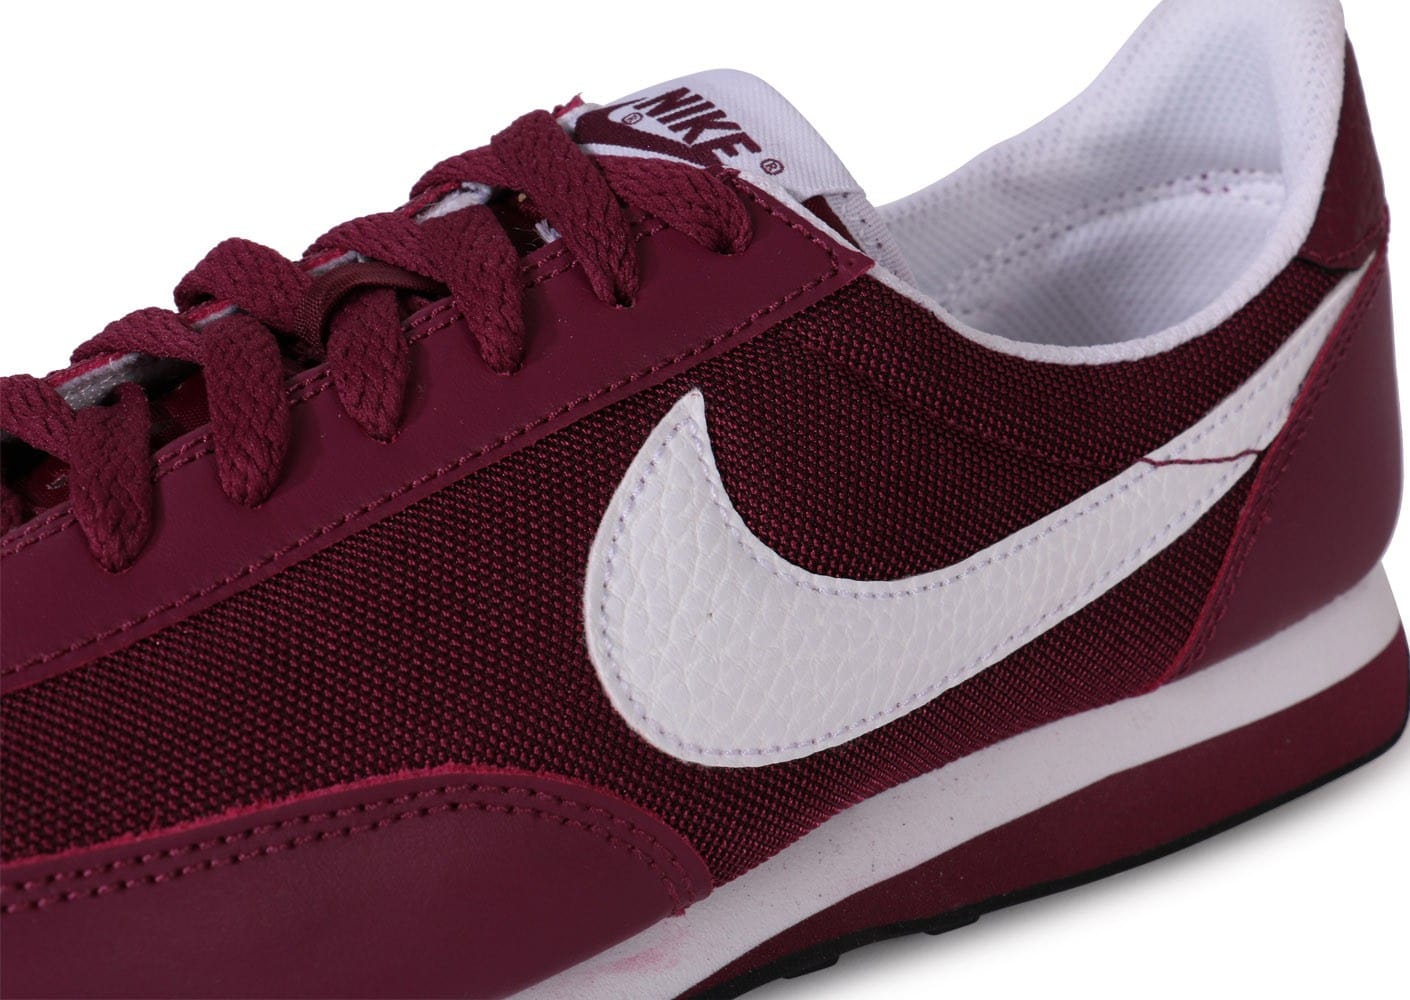 chaussures nike bordeaux. Black Bedroom Furniture Sets. Home Design Ideas